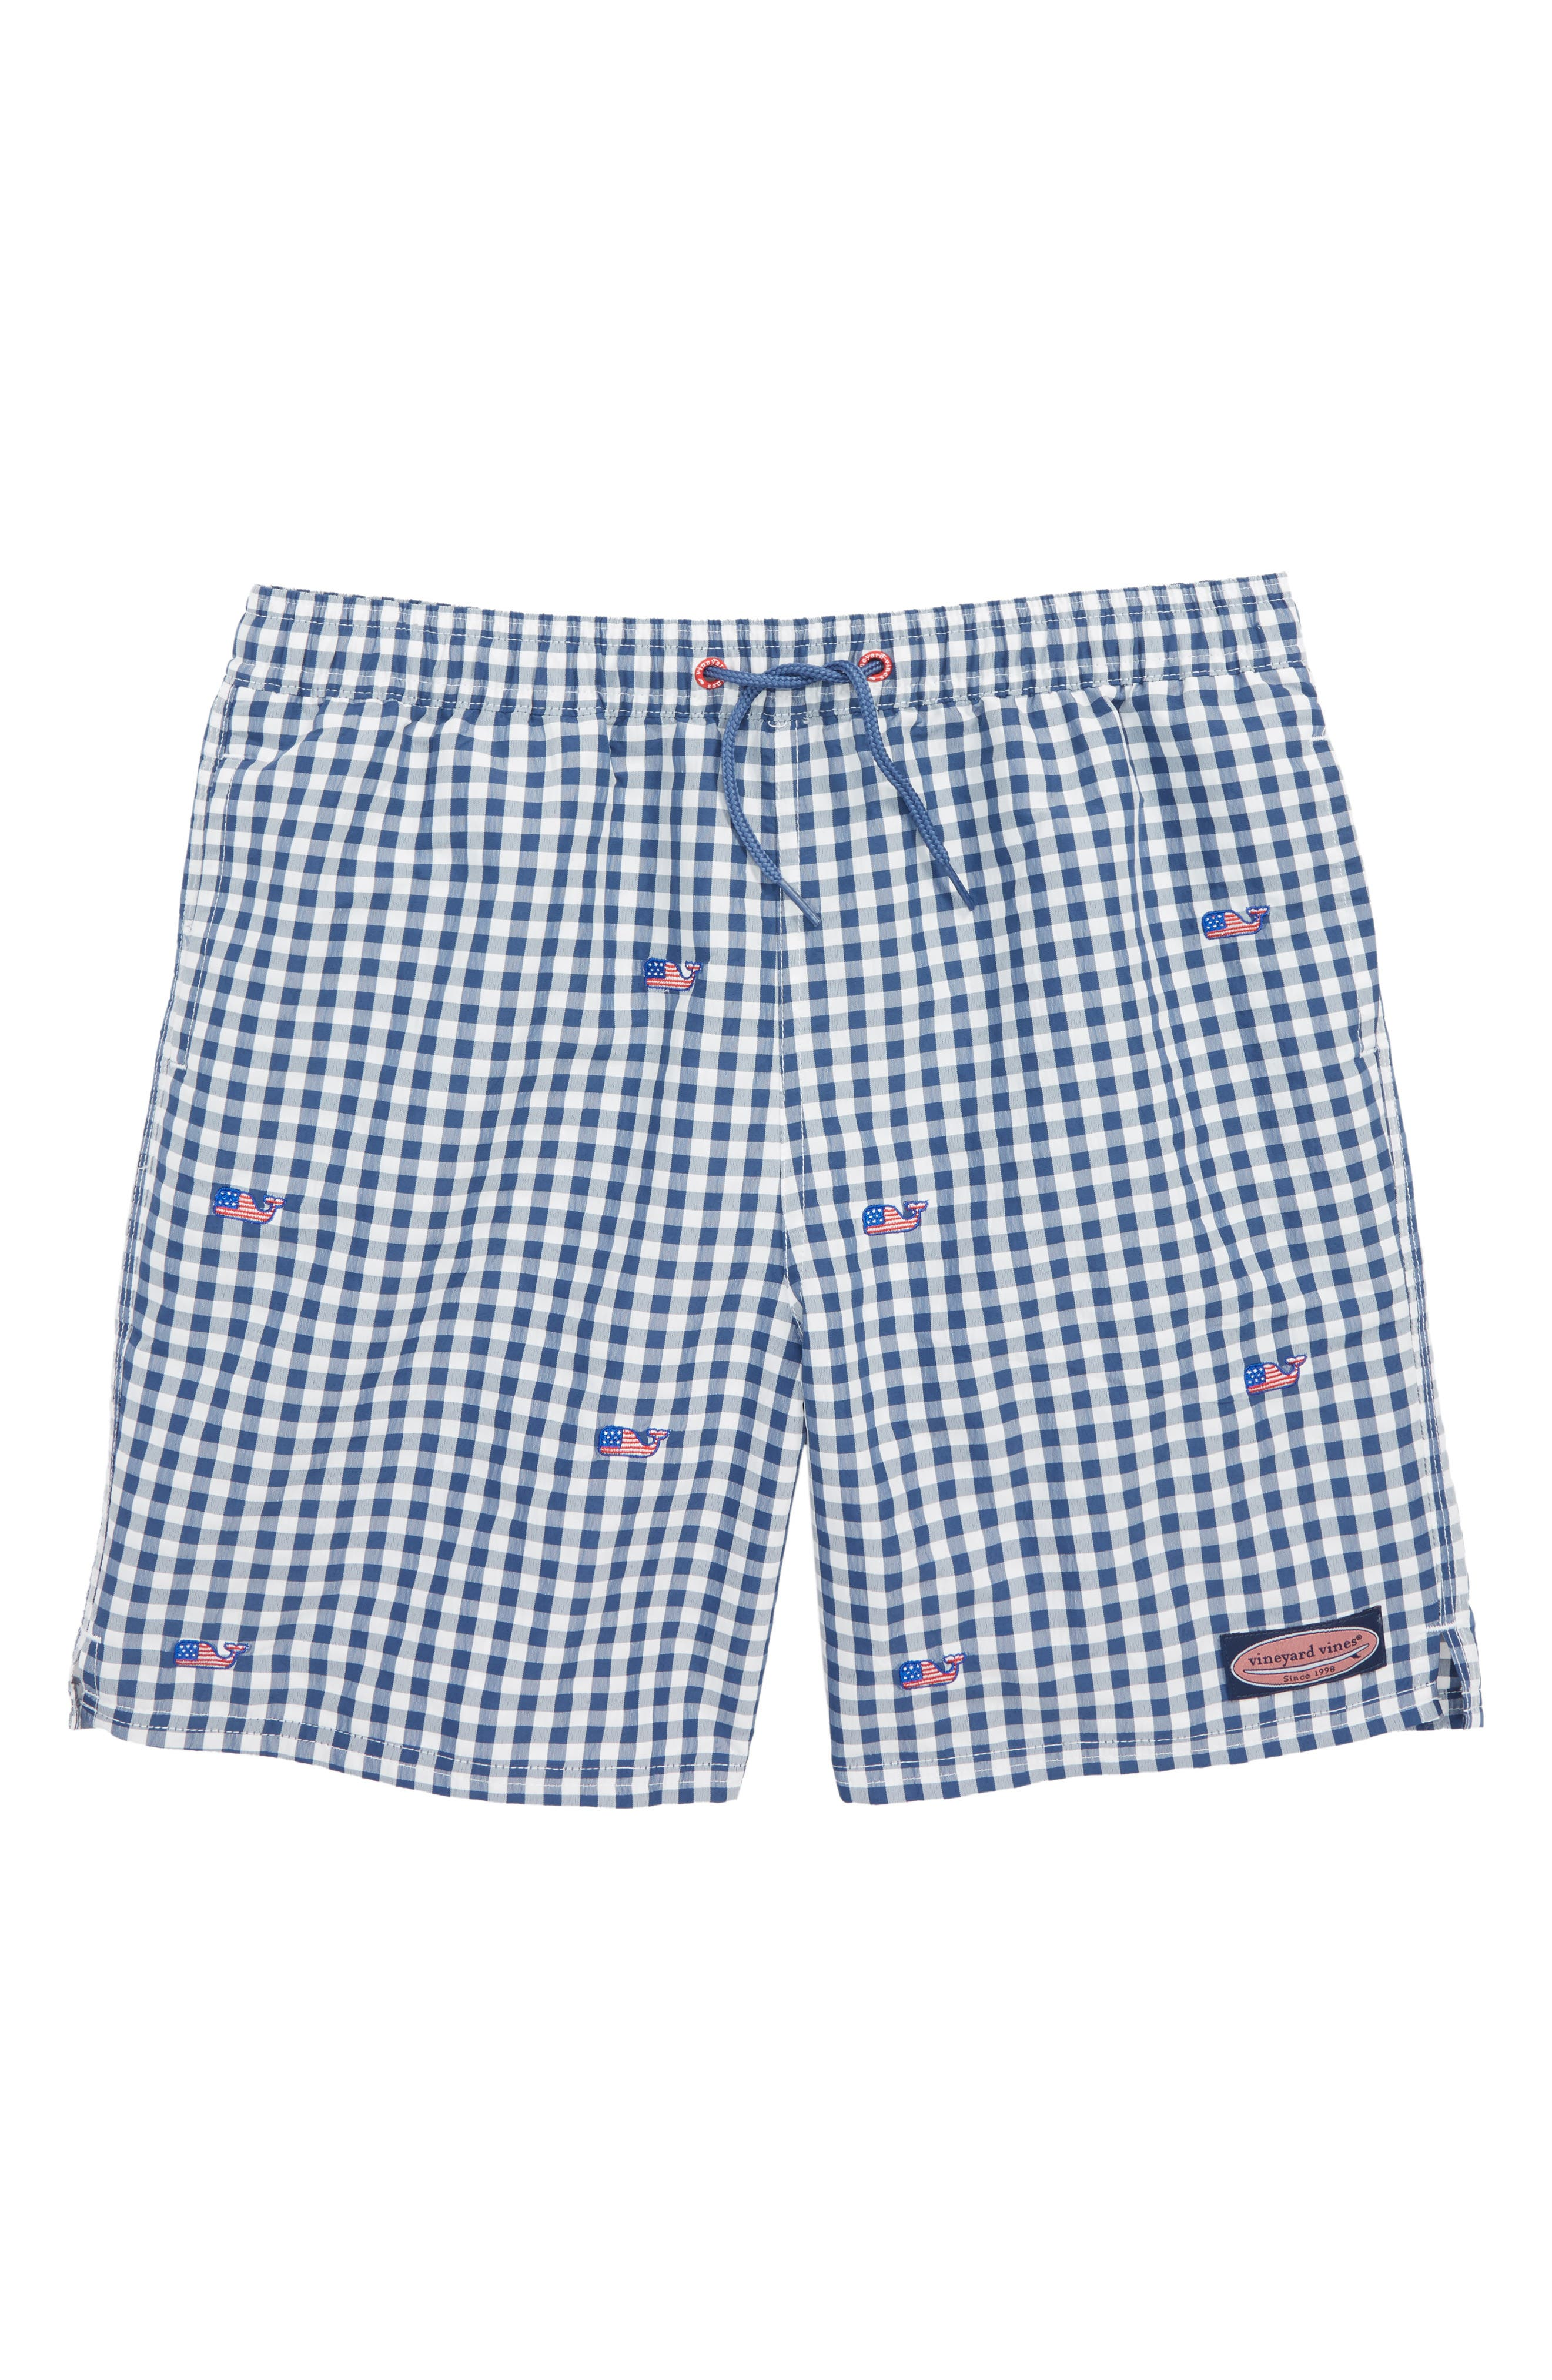 Chappy Gingham Flag Whale Swim Trunks,                         Main,                         color, Moonshine